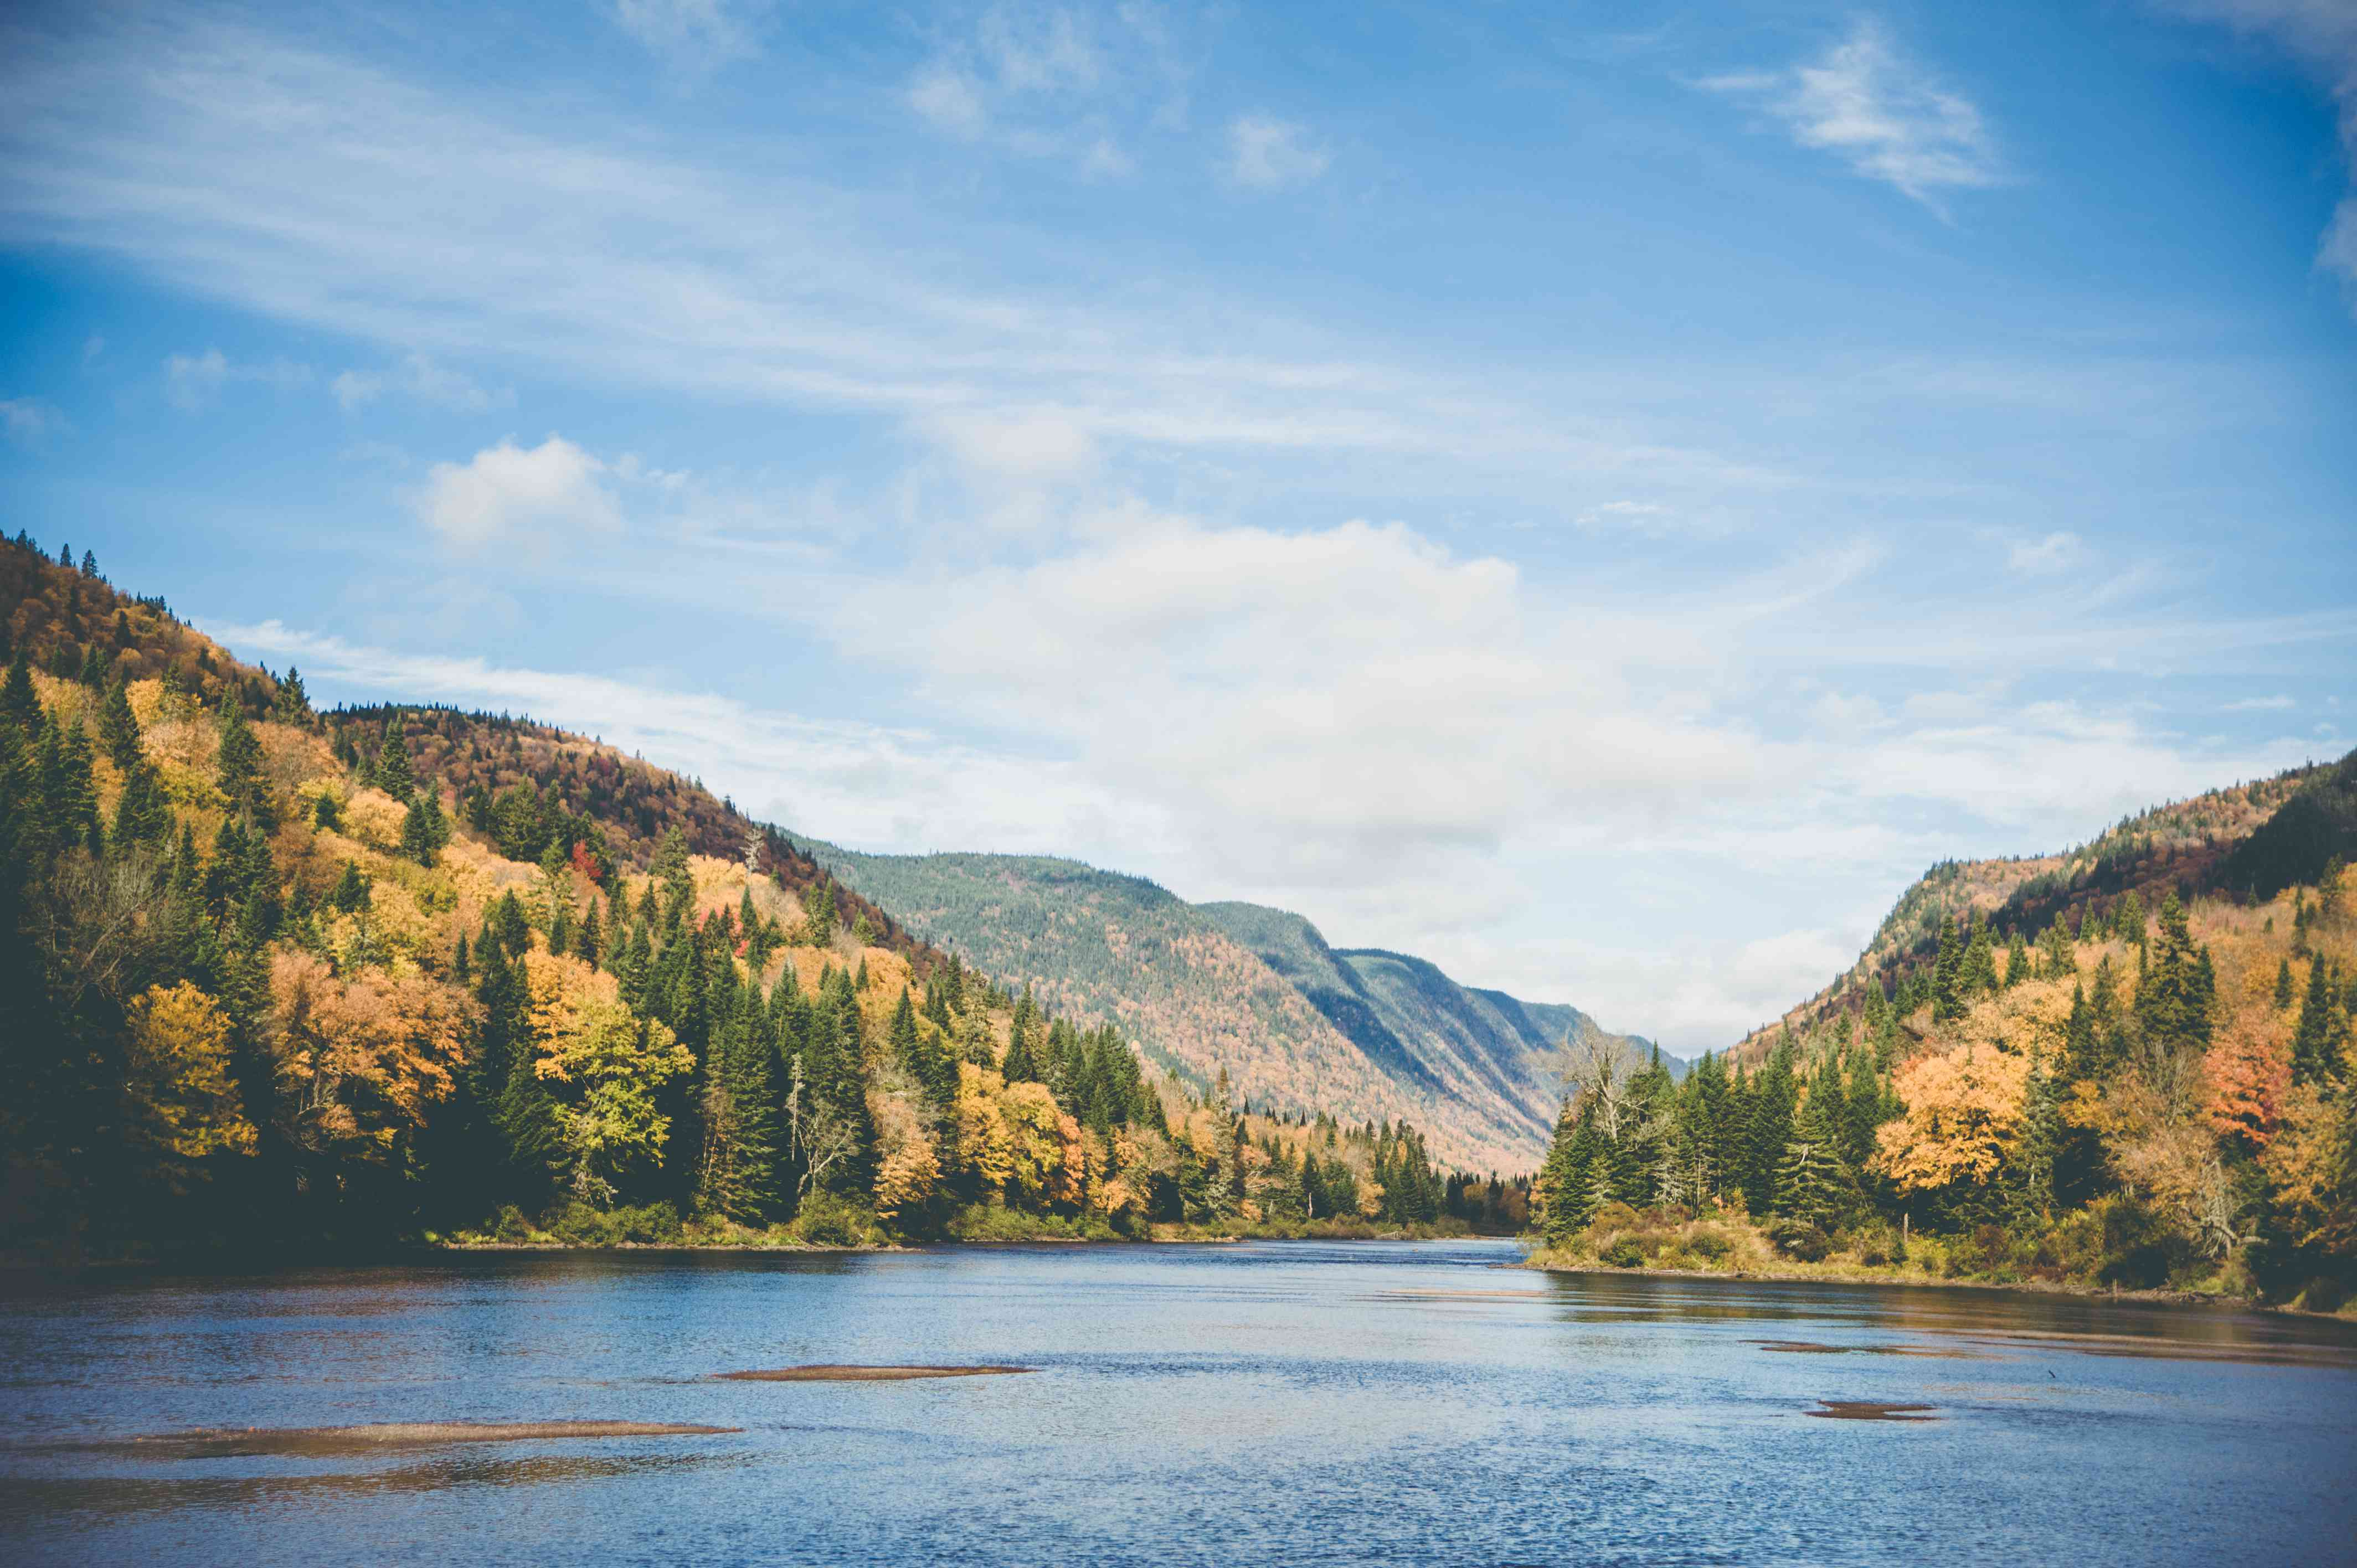 Jacques-Cartier National Park - Shores of the Lake